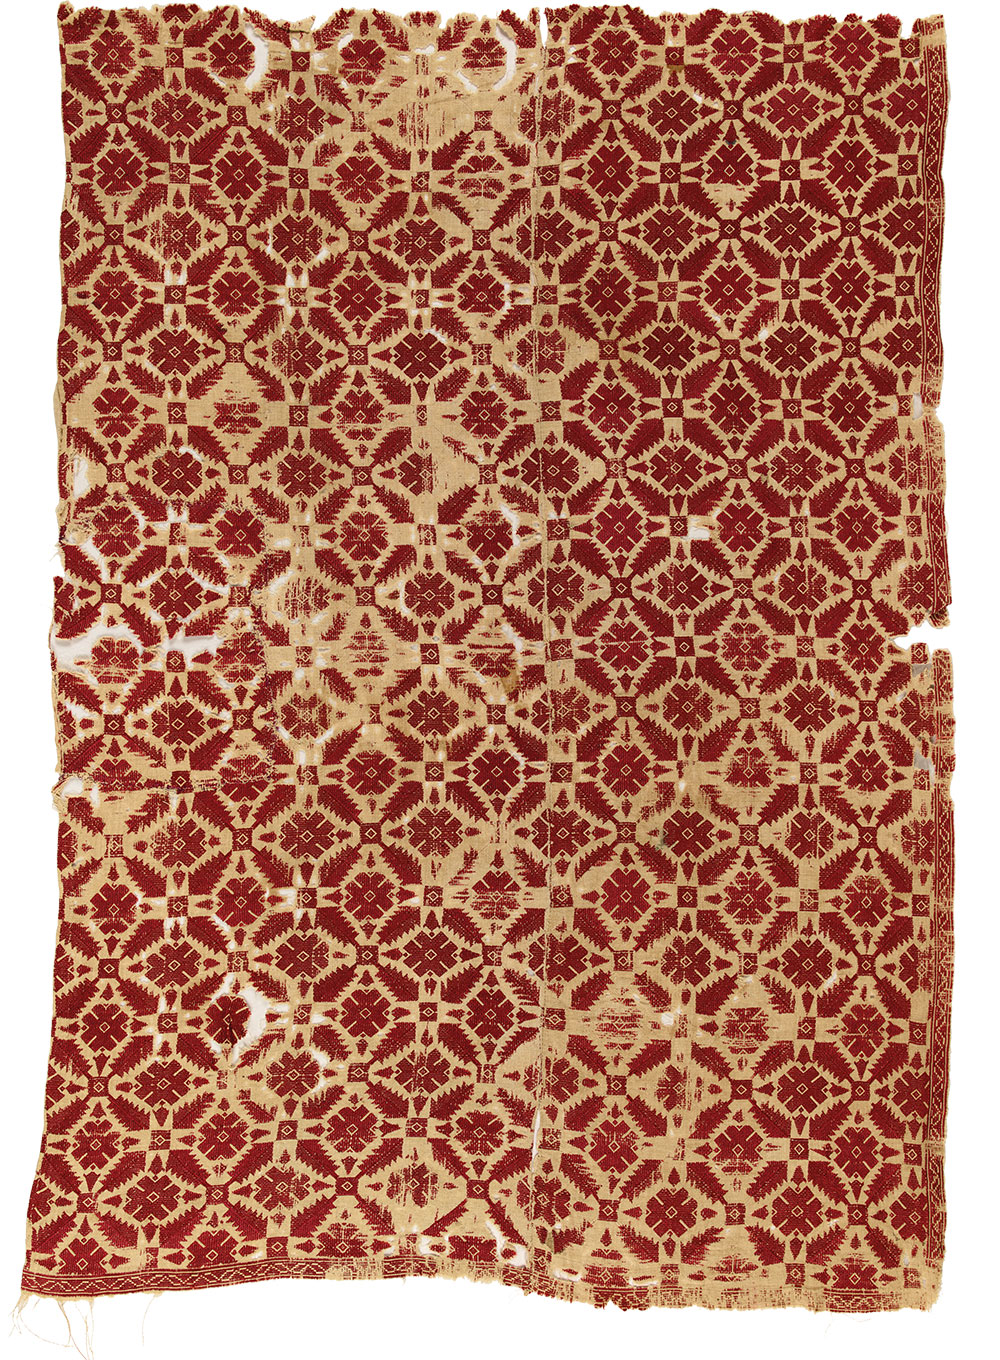 """(8) Section of a bedspread, Naxos, Cyclades, 18th century. Silk on linen, 0.82 x 1.20 m (2' 8"""" x 3' 11""""). Ashmolean Museum of Art and Archaeology, University of Oxford, EA1978.113, Presented by John Buxton, 1978"""